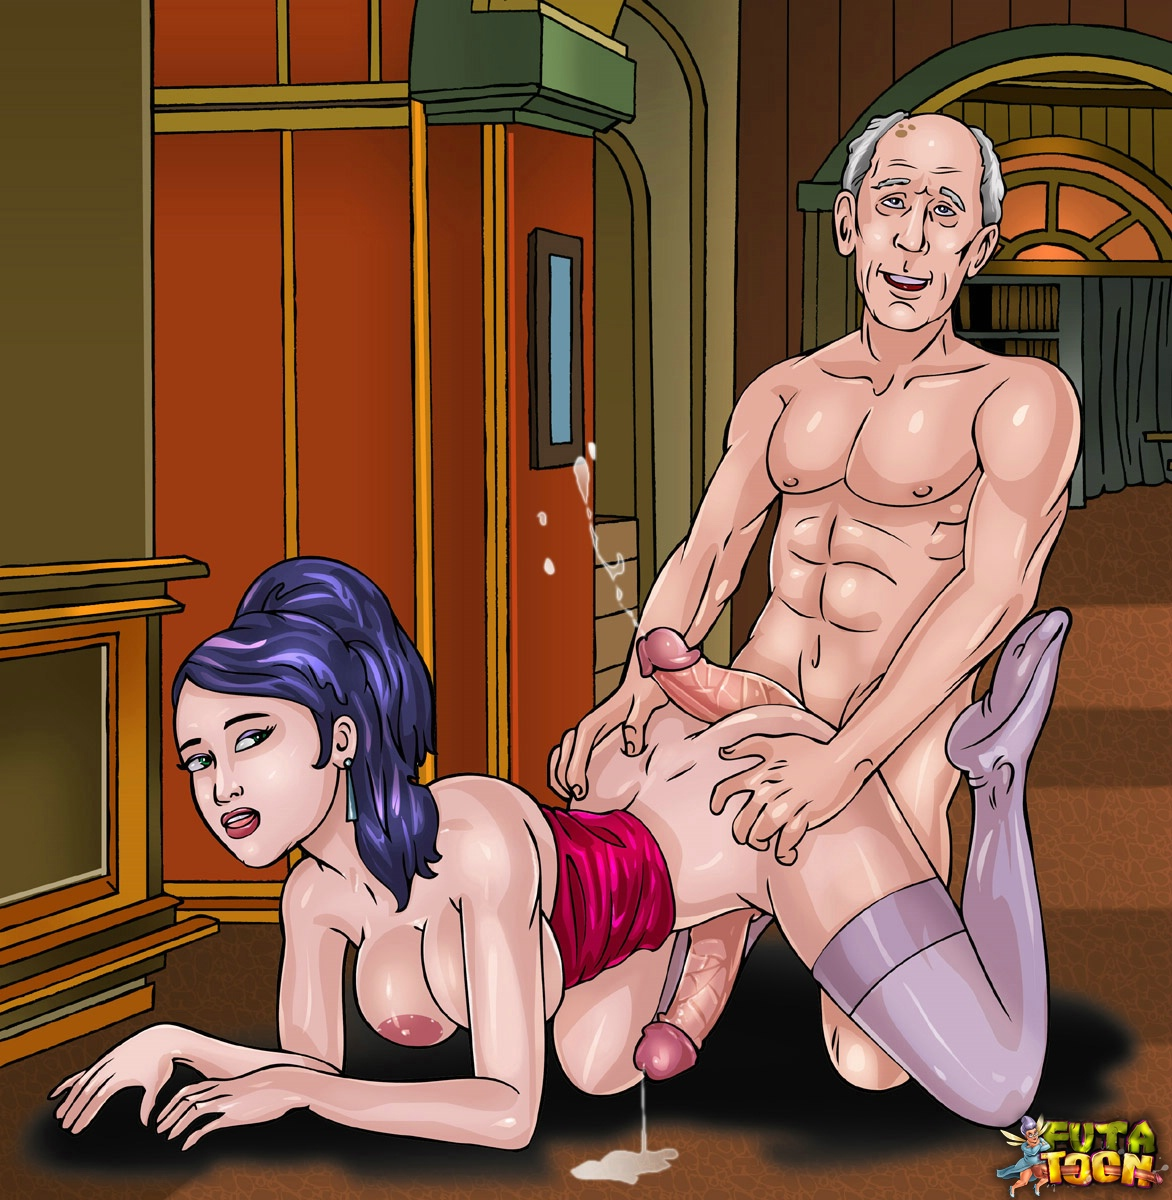 Cartoons epic sex in hd images nude clips